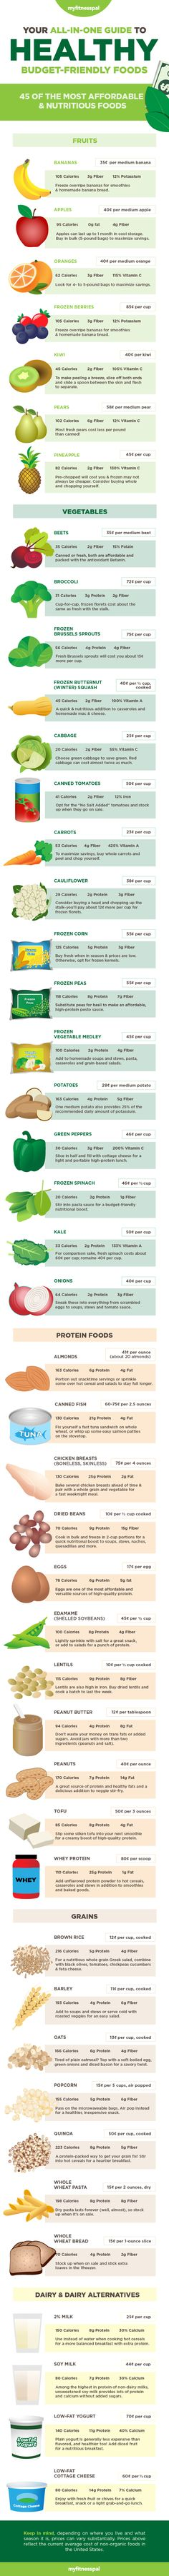 Your Guide to Budget-Friendly Grocery Shopping (Infographic) - Hello HealthyHello Healthy